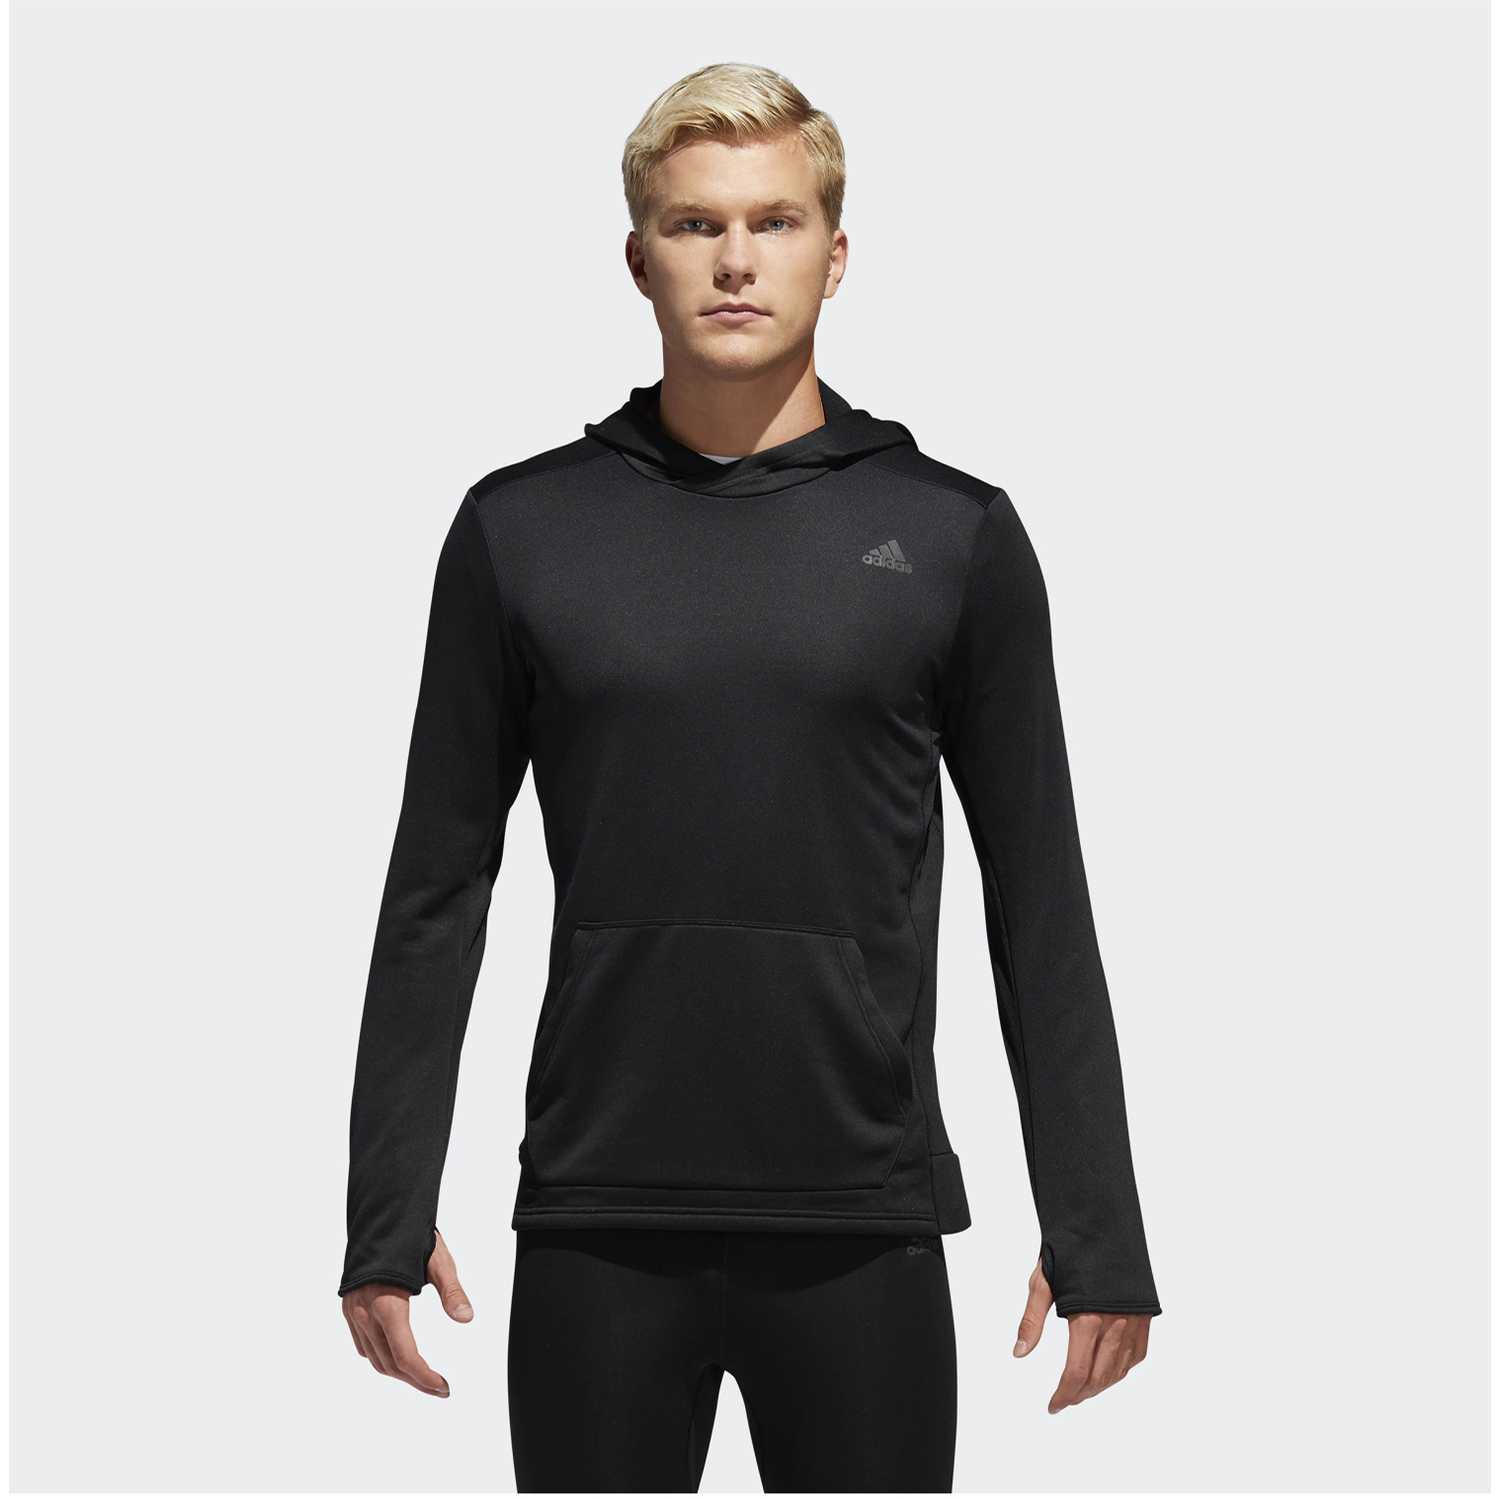 Casaca de Hombre Adidas Negro own the run hd